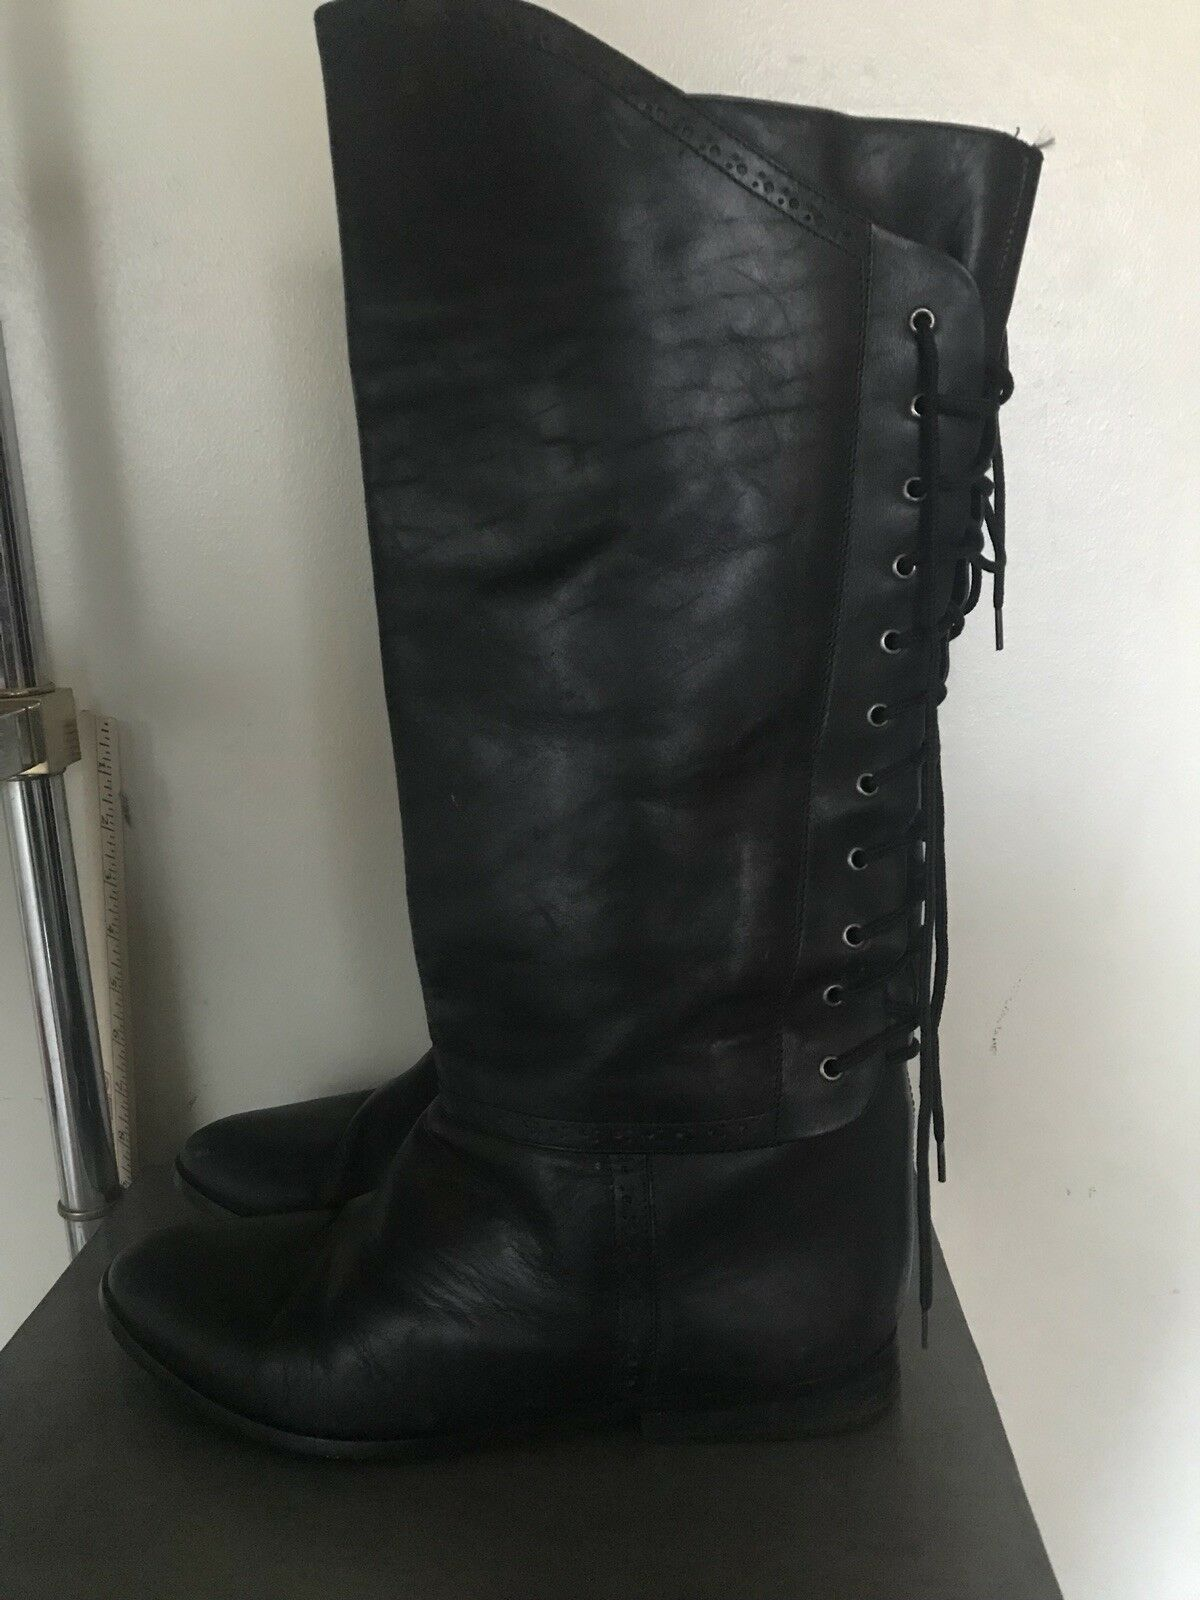 online economico VIA MILANO nero Leather Knee High High High Riding stivali Dimensione 11D Lace Up Back  sconto di vendita